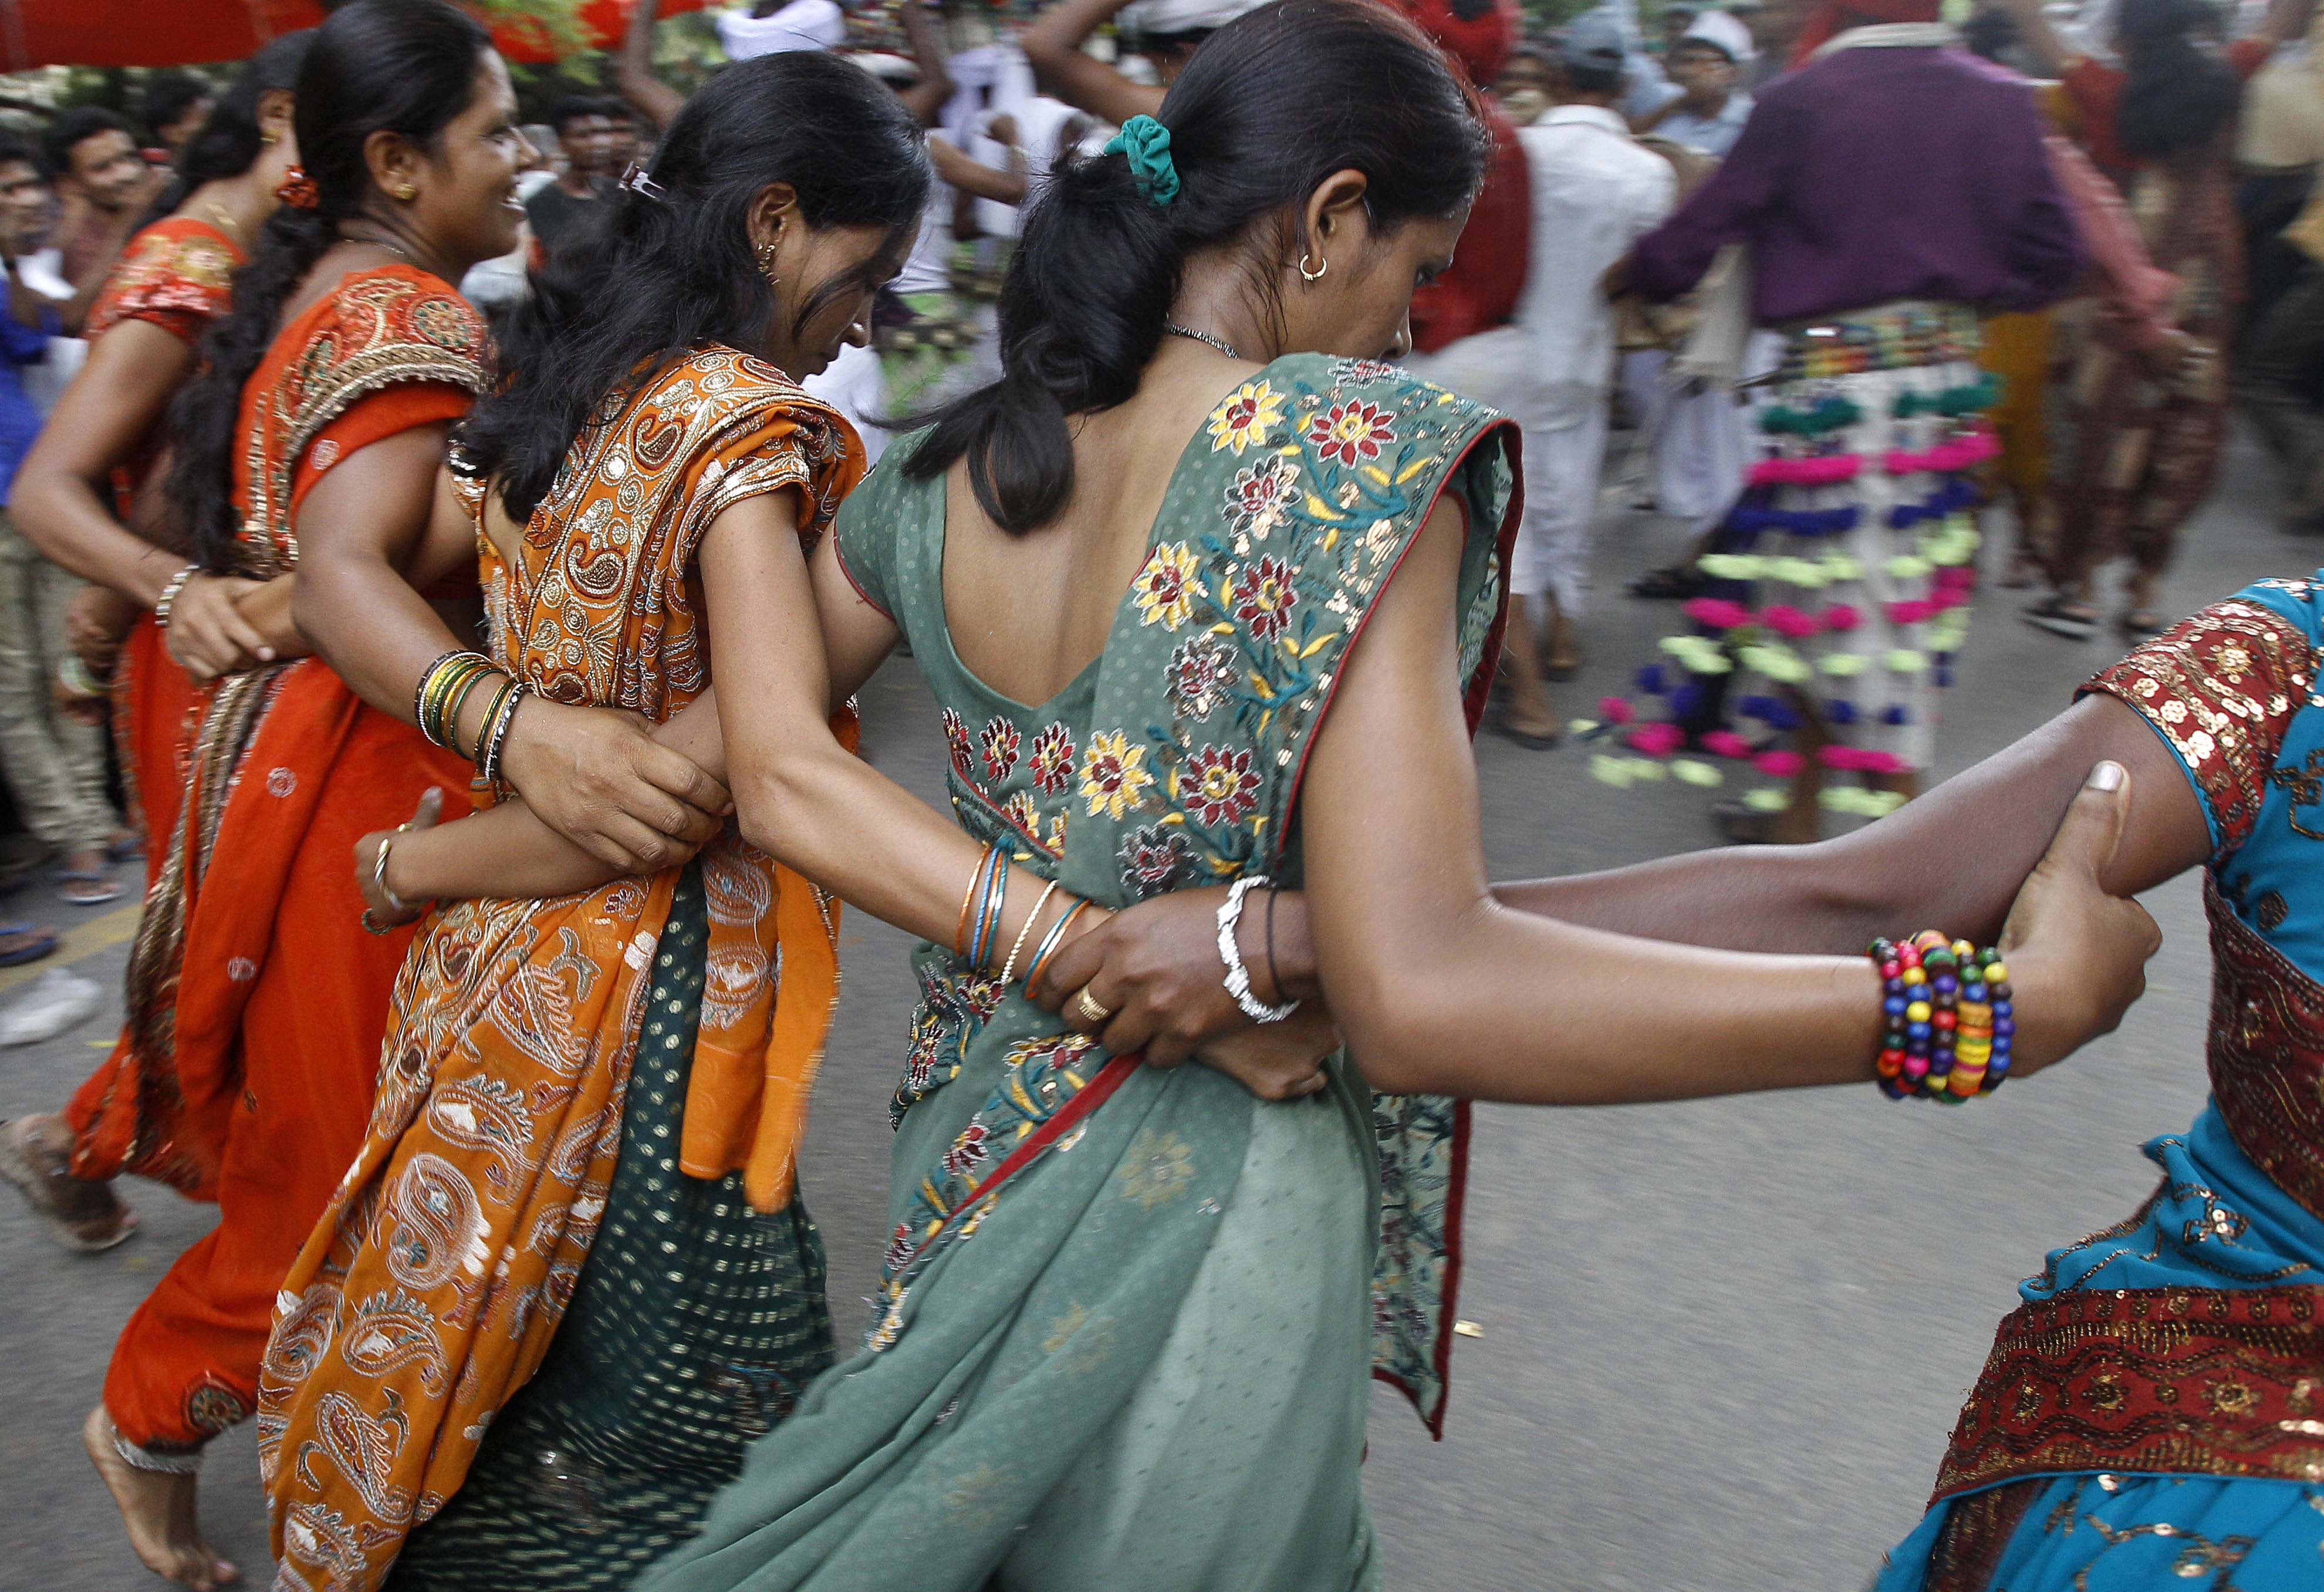 People India Tribal Dancers From The Western Indian State Of Gujarat